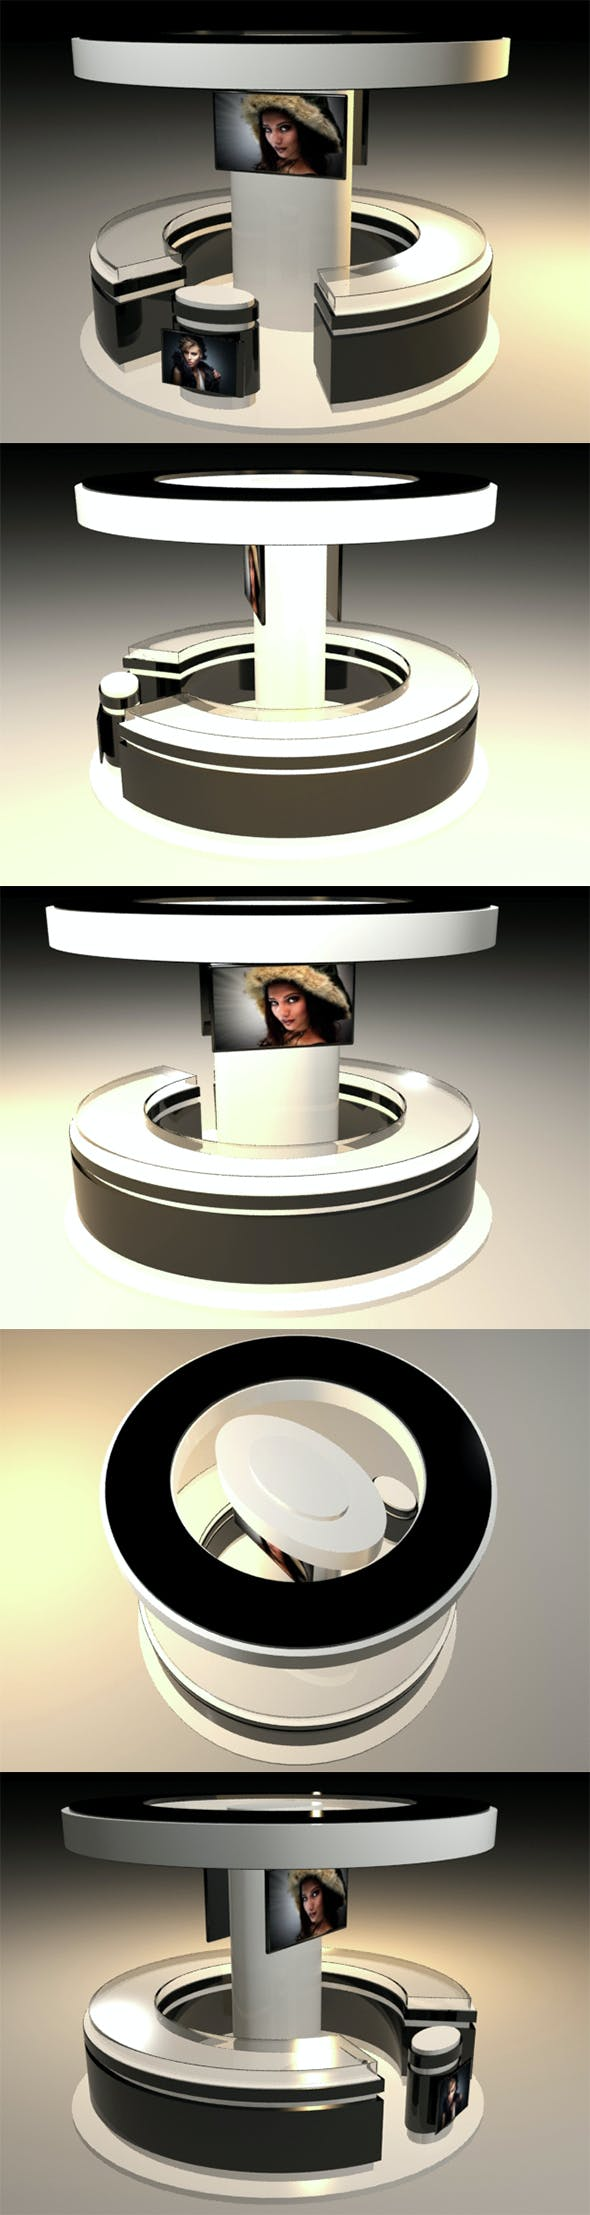 Exhibition Stand - Circular Shape 3D  - 3DOcean Item for Sale